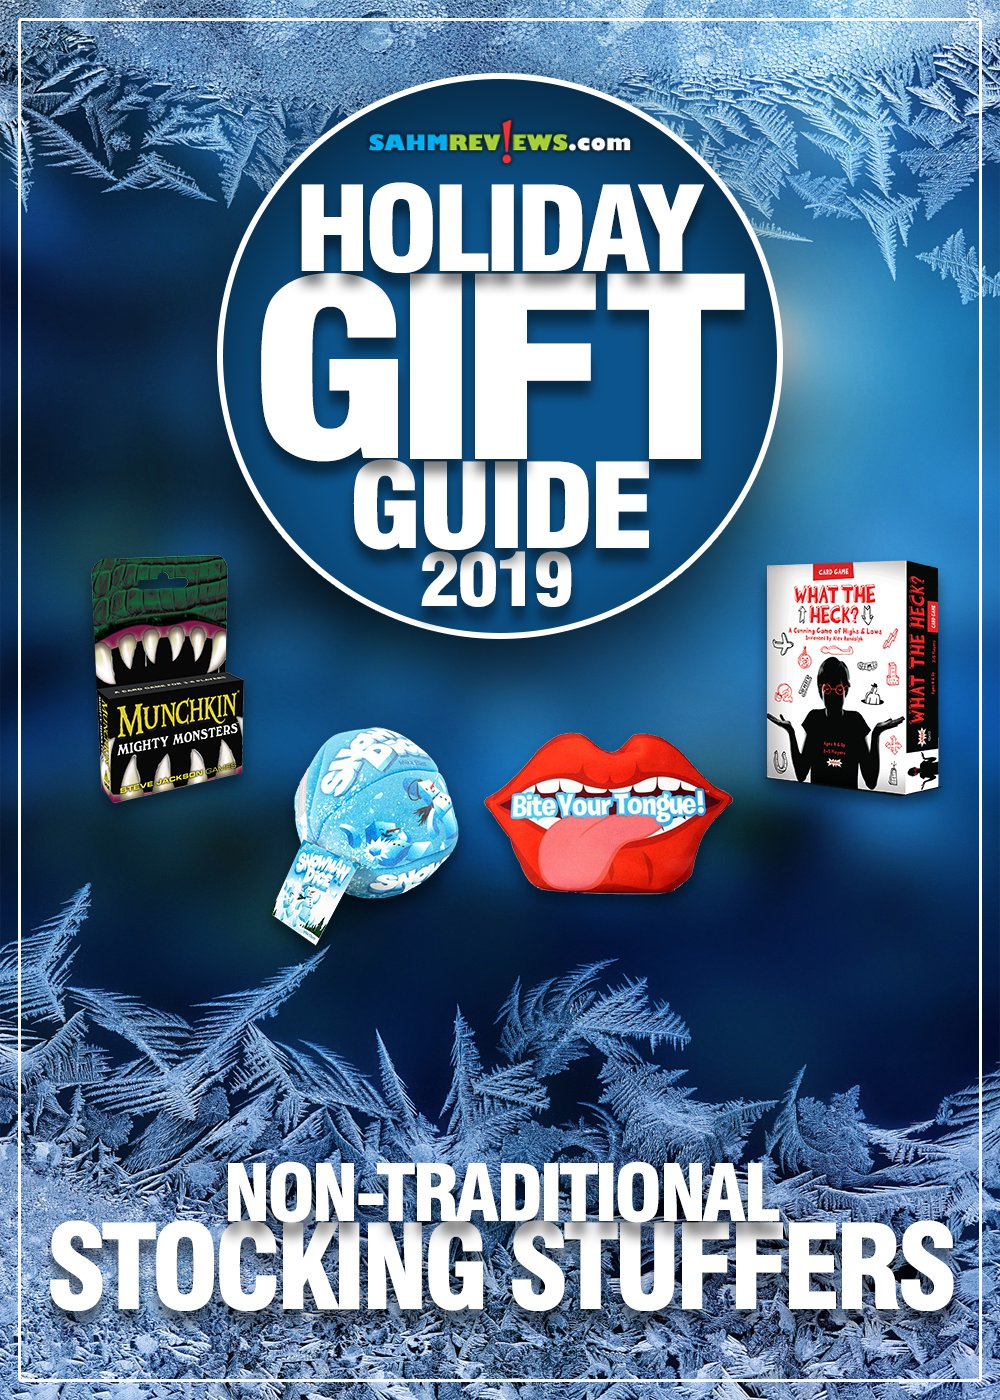 Stocking stuffers don't have to be candy and sweets. Think outside the box with these inexpensive game and toy ideas in our Holiday Gift Guide! - SahmReviews.com